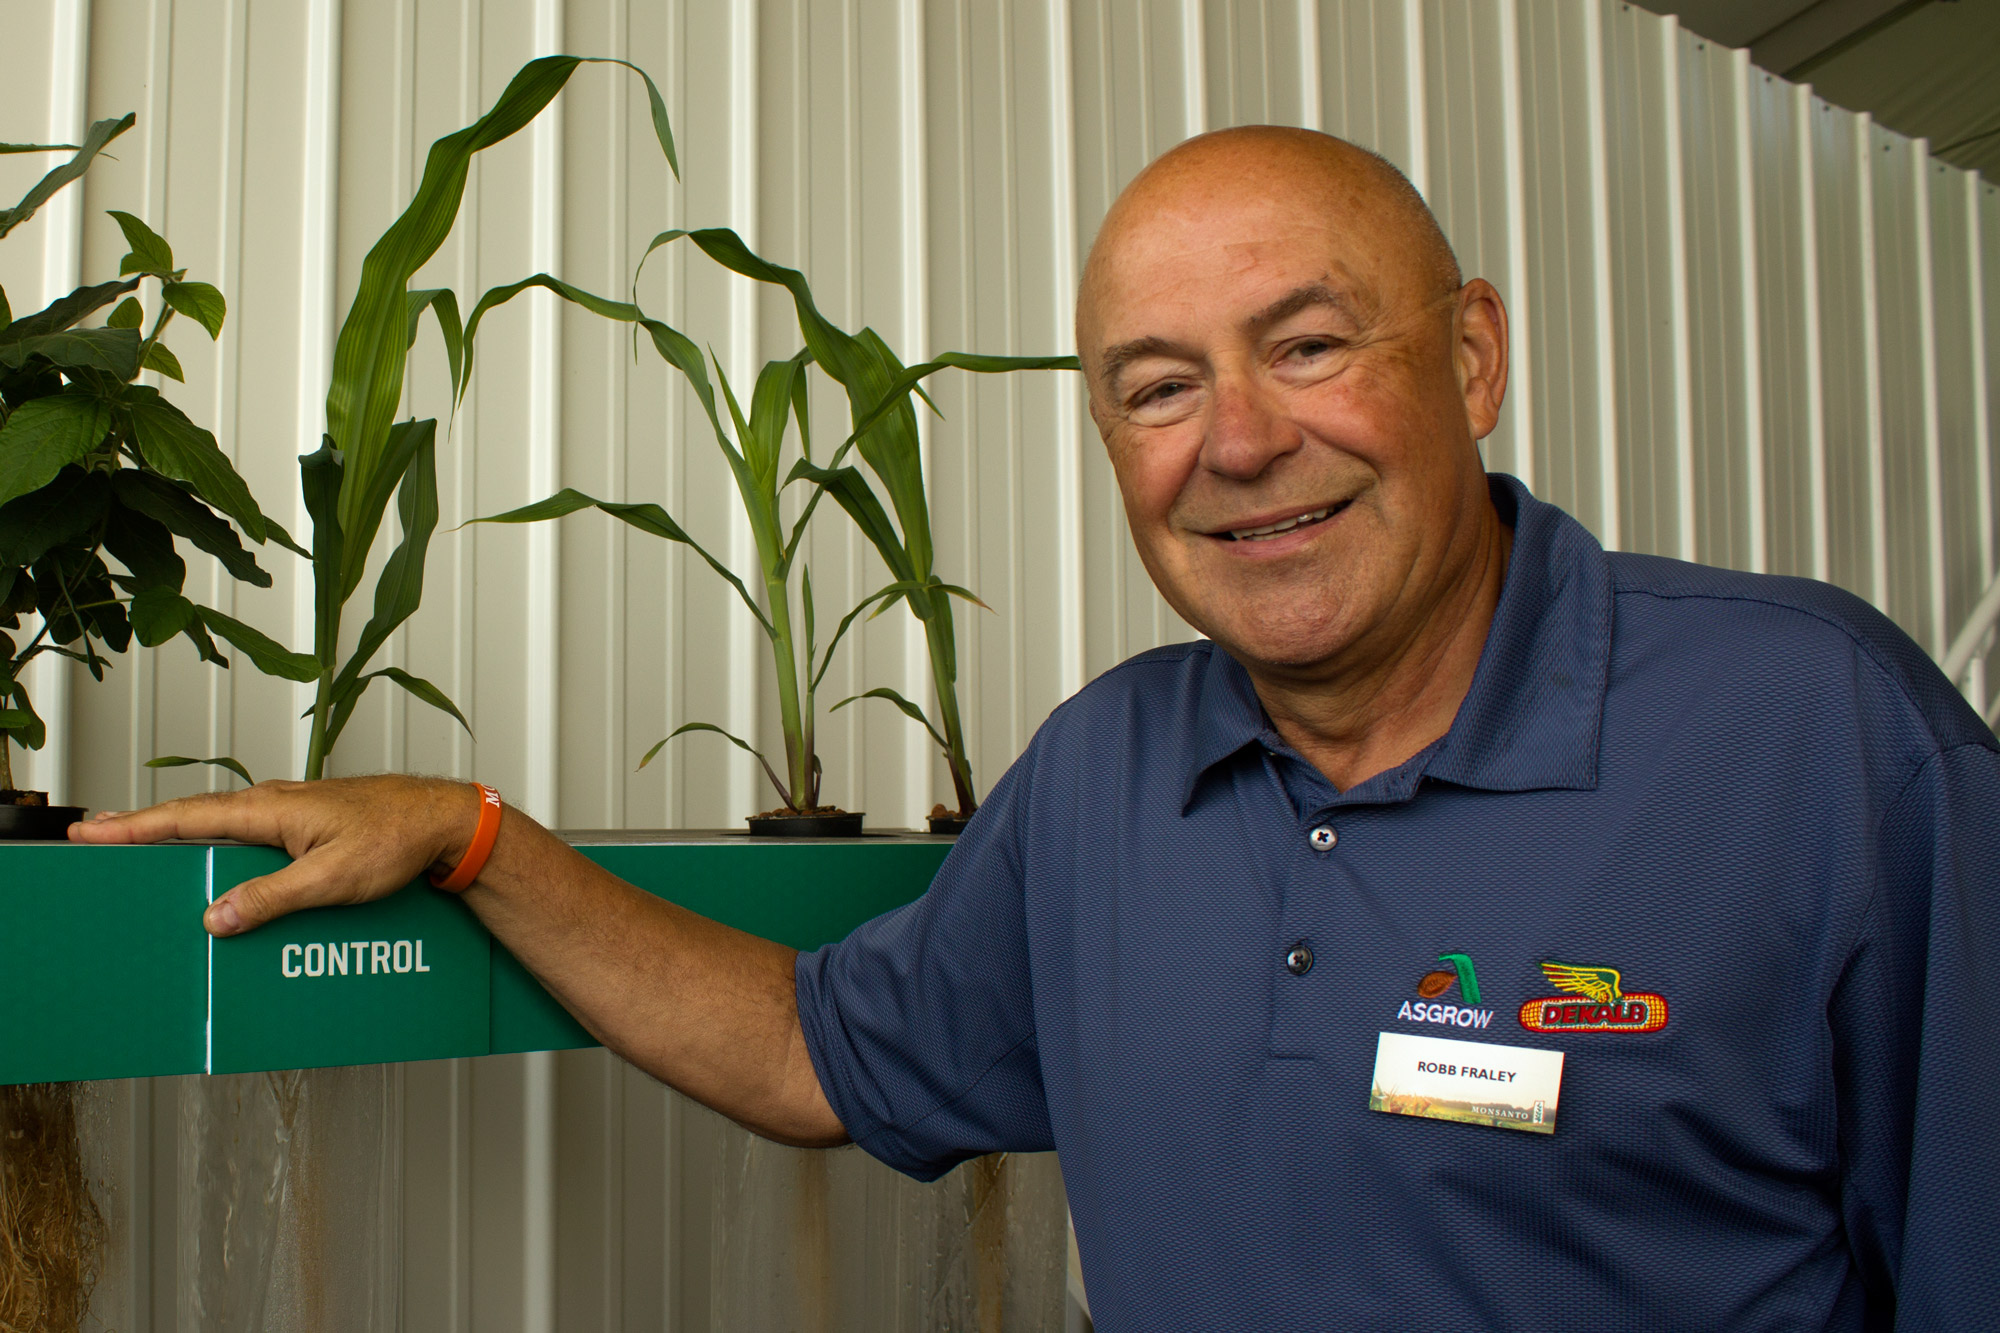 Monsanto chief technology officer Robb Fraley